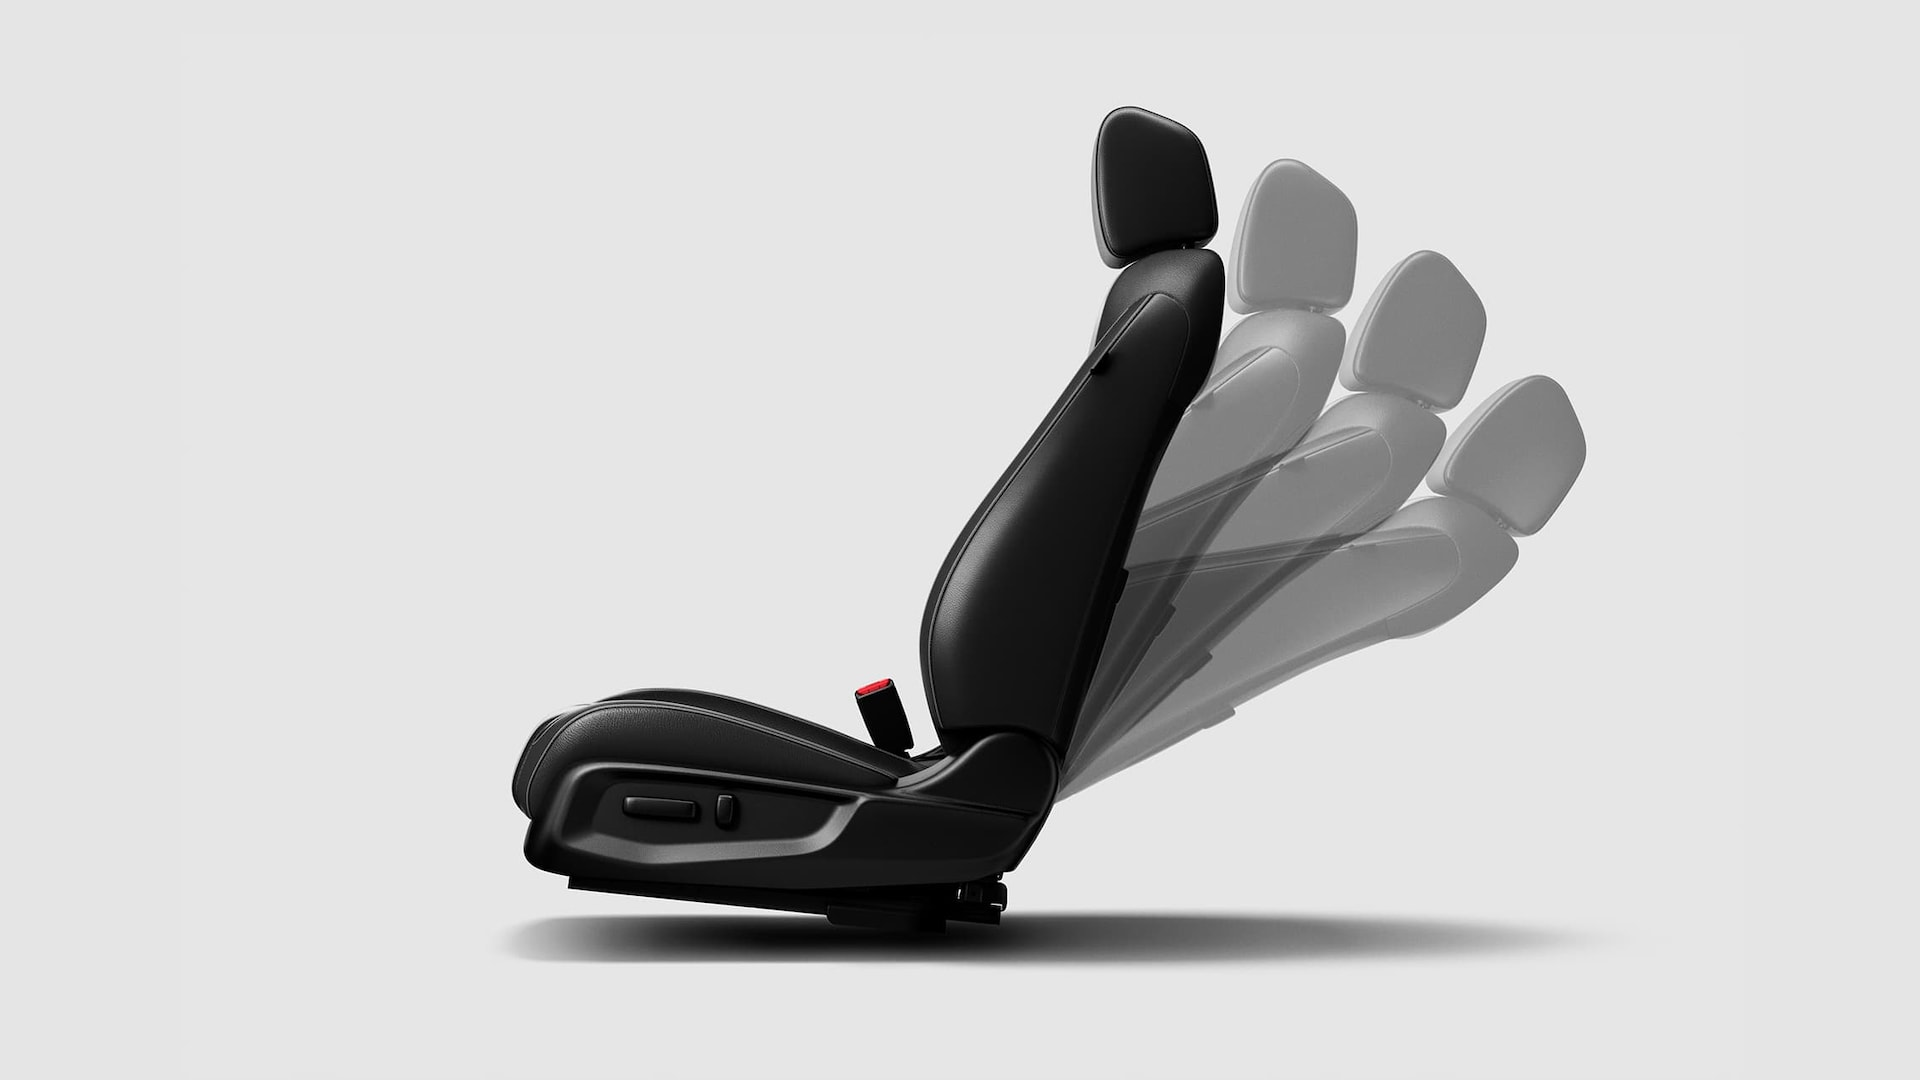 Detail of 8-way power-adjustable driver's seat, in various position settings, for the 2020 Honda Civic Touring Sedan.